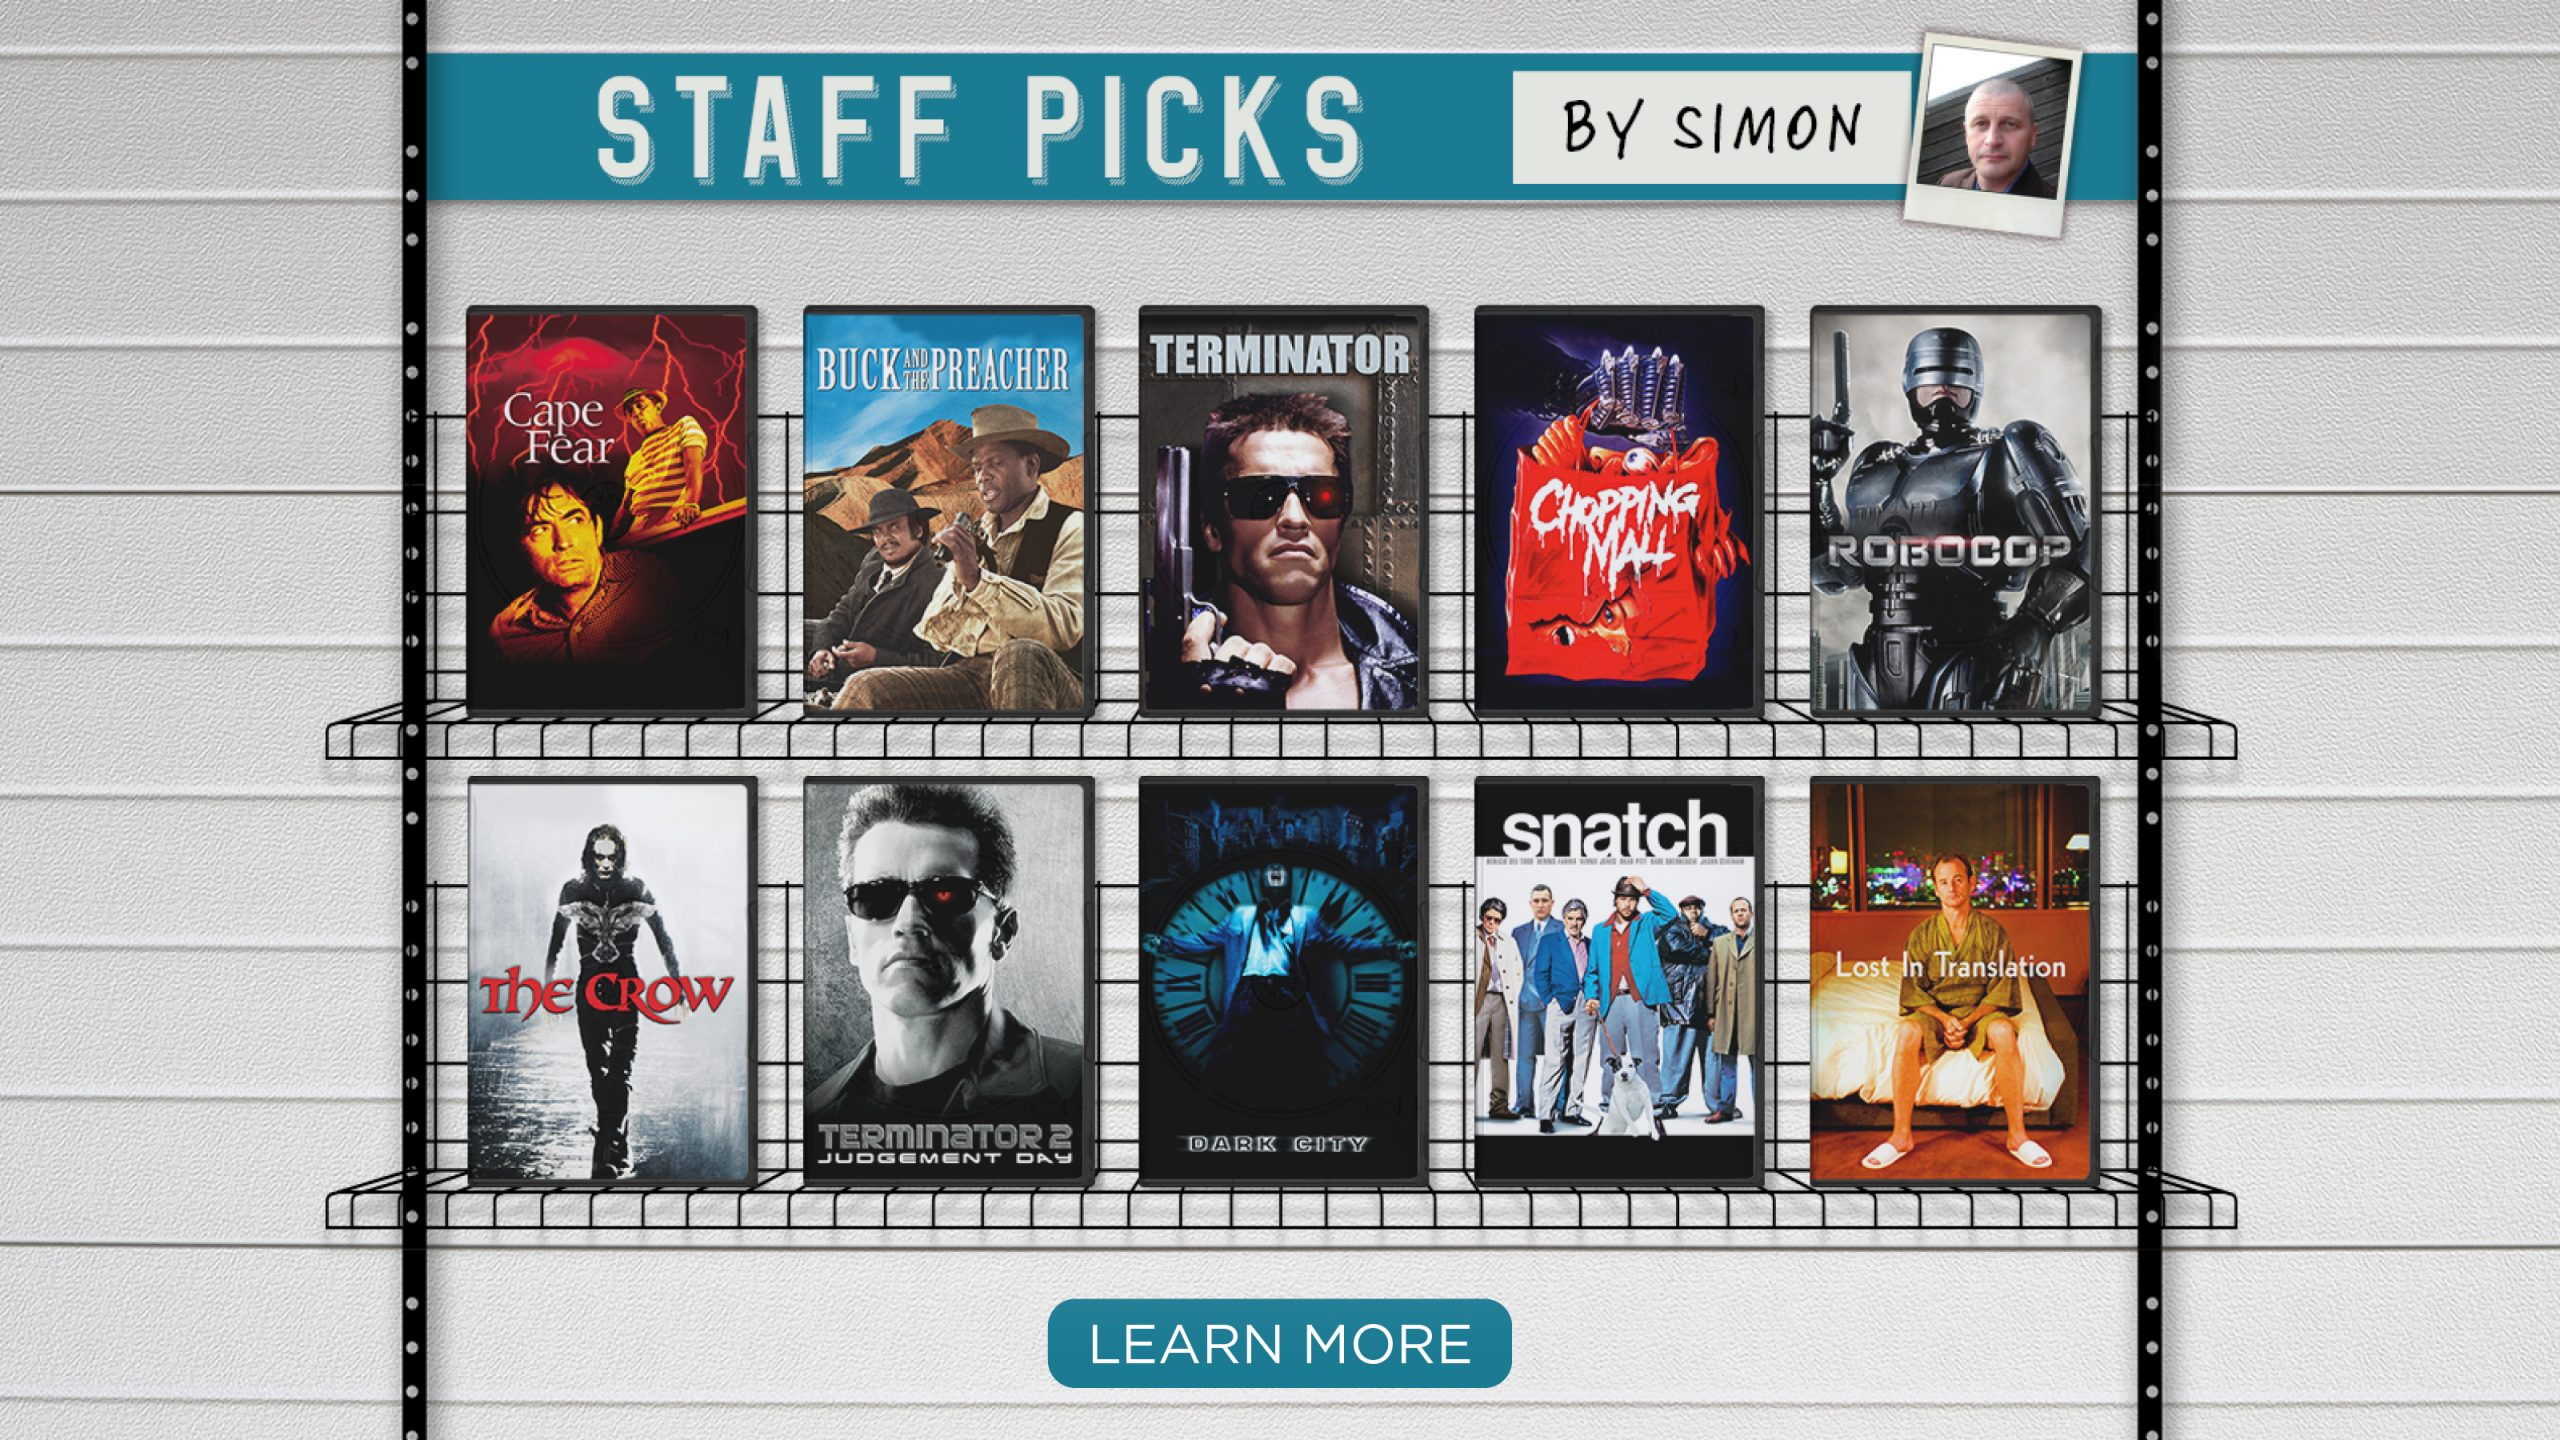 Staff Picks by Simon  [Learn more]